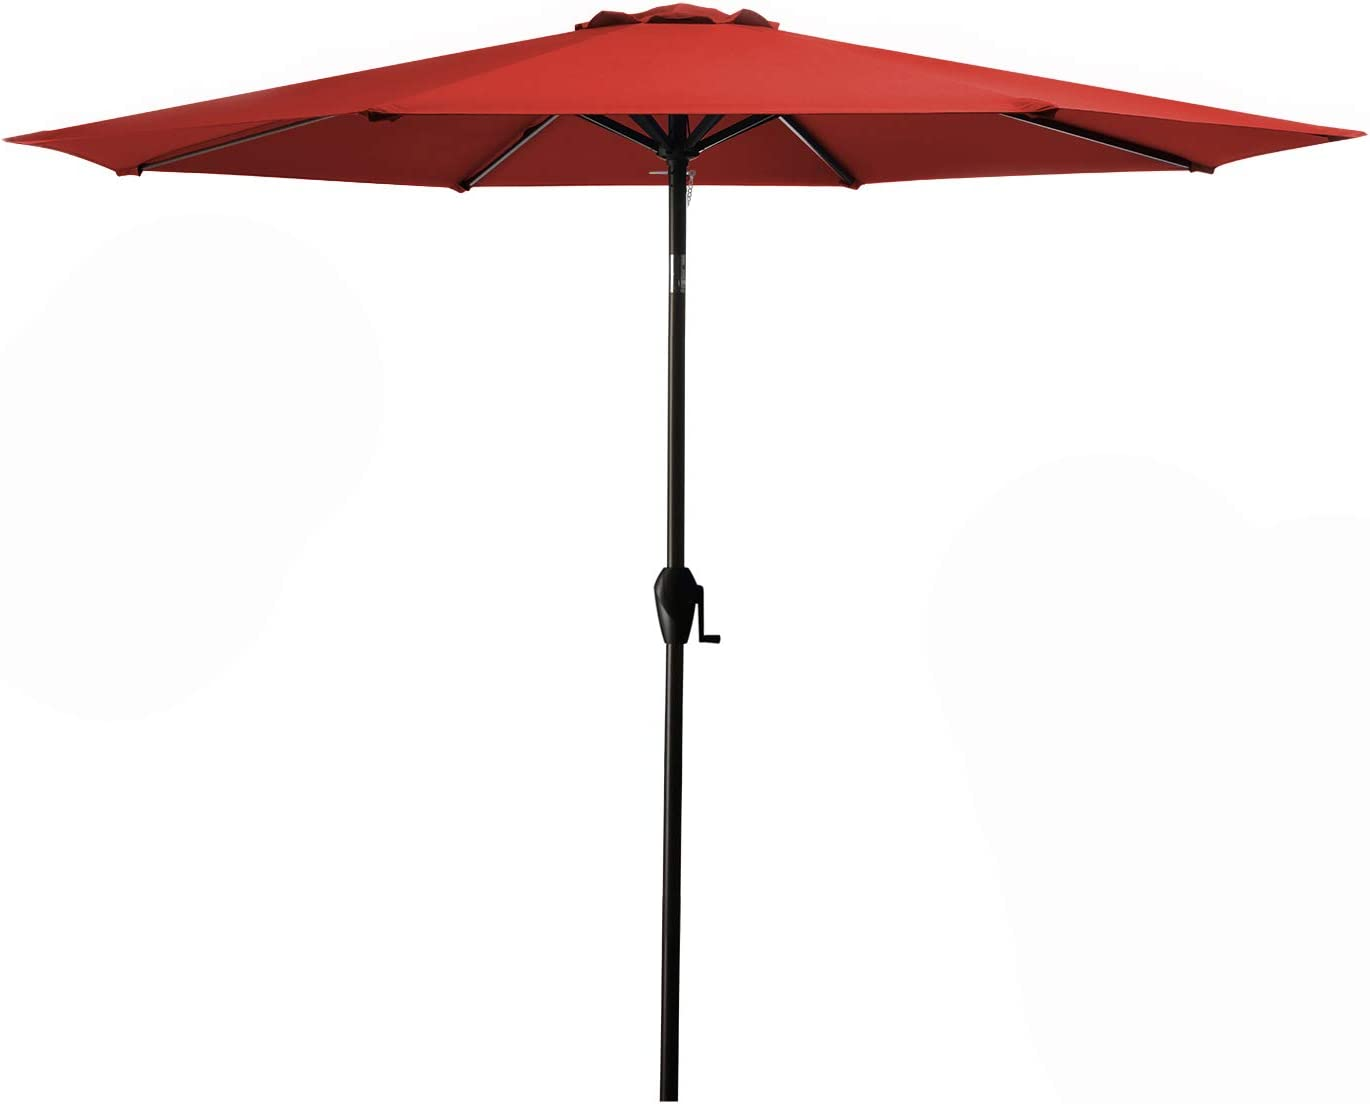 MEWAY 10ft Patio Umbrella Outdoor Umbrella